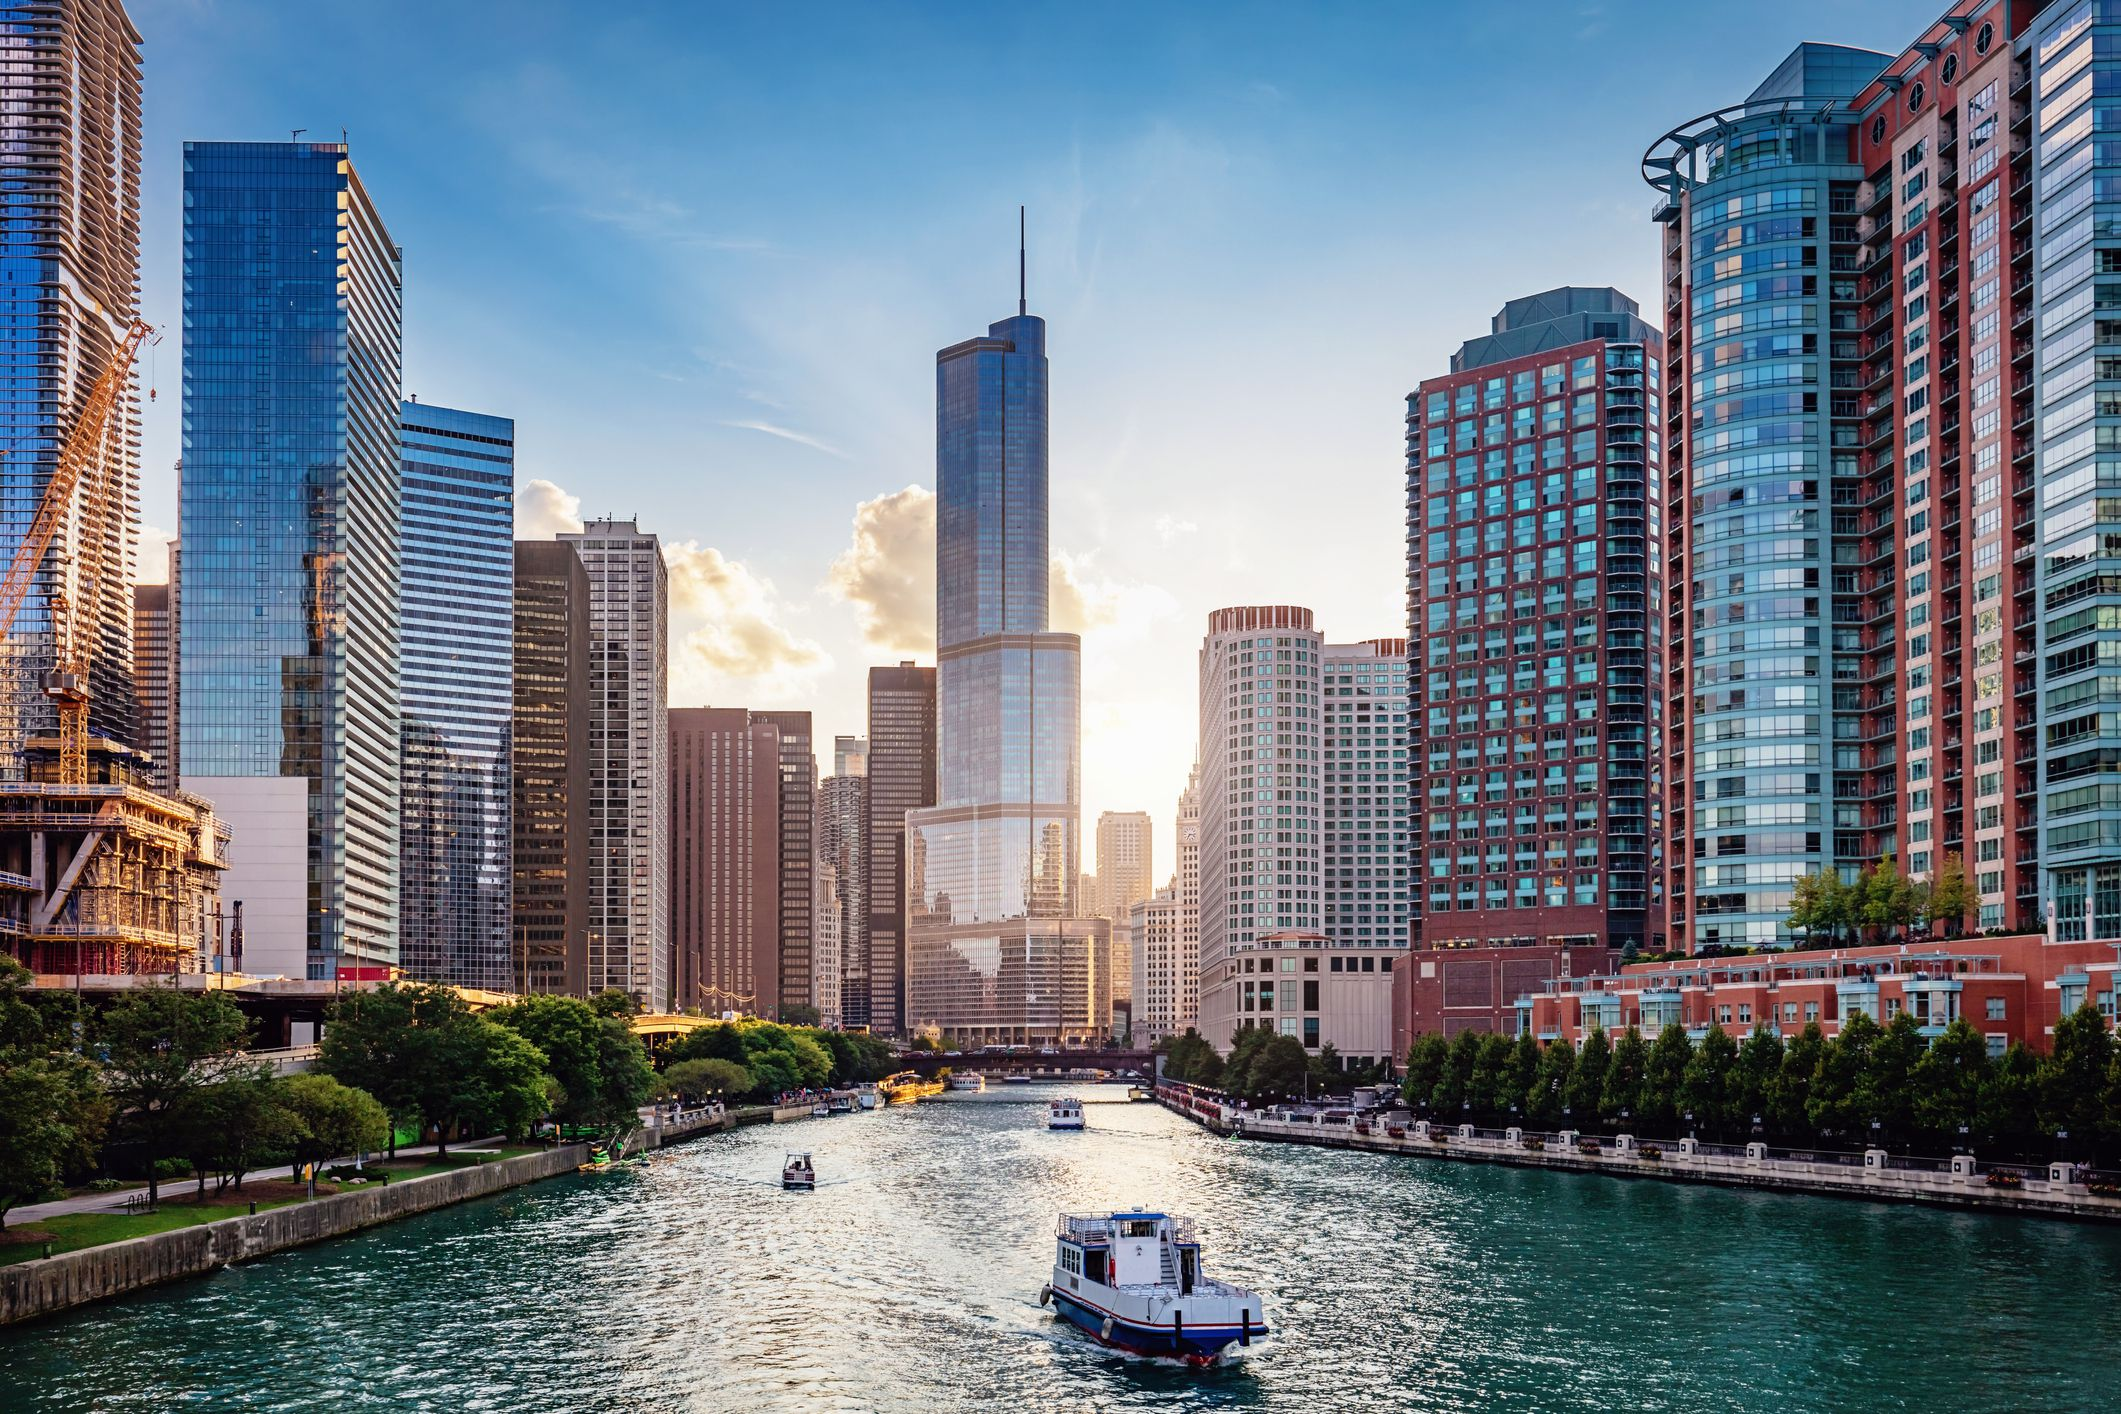 The 7 Best Chicago Architecture Boat Tours Of 2019